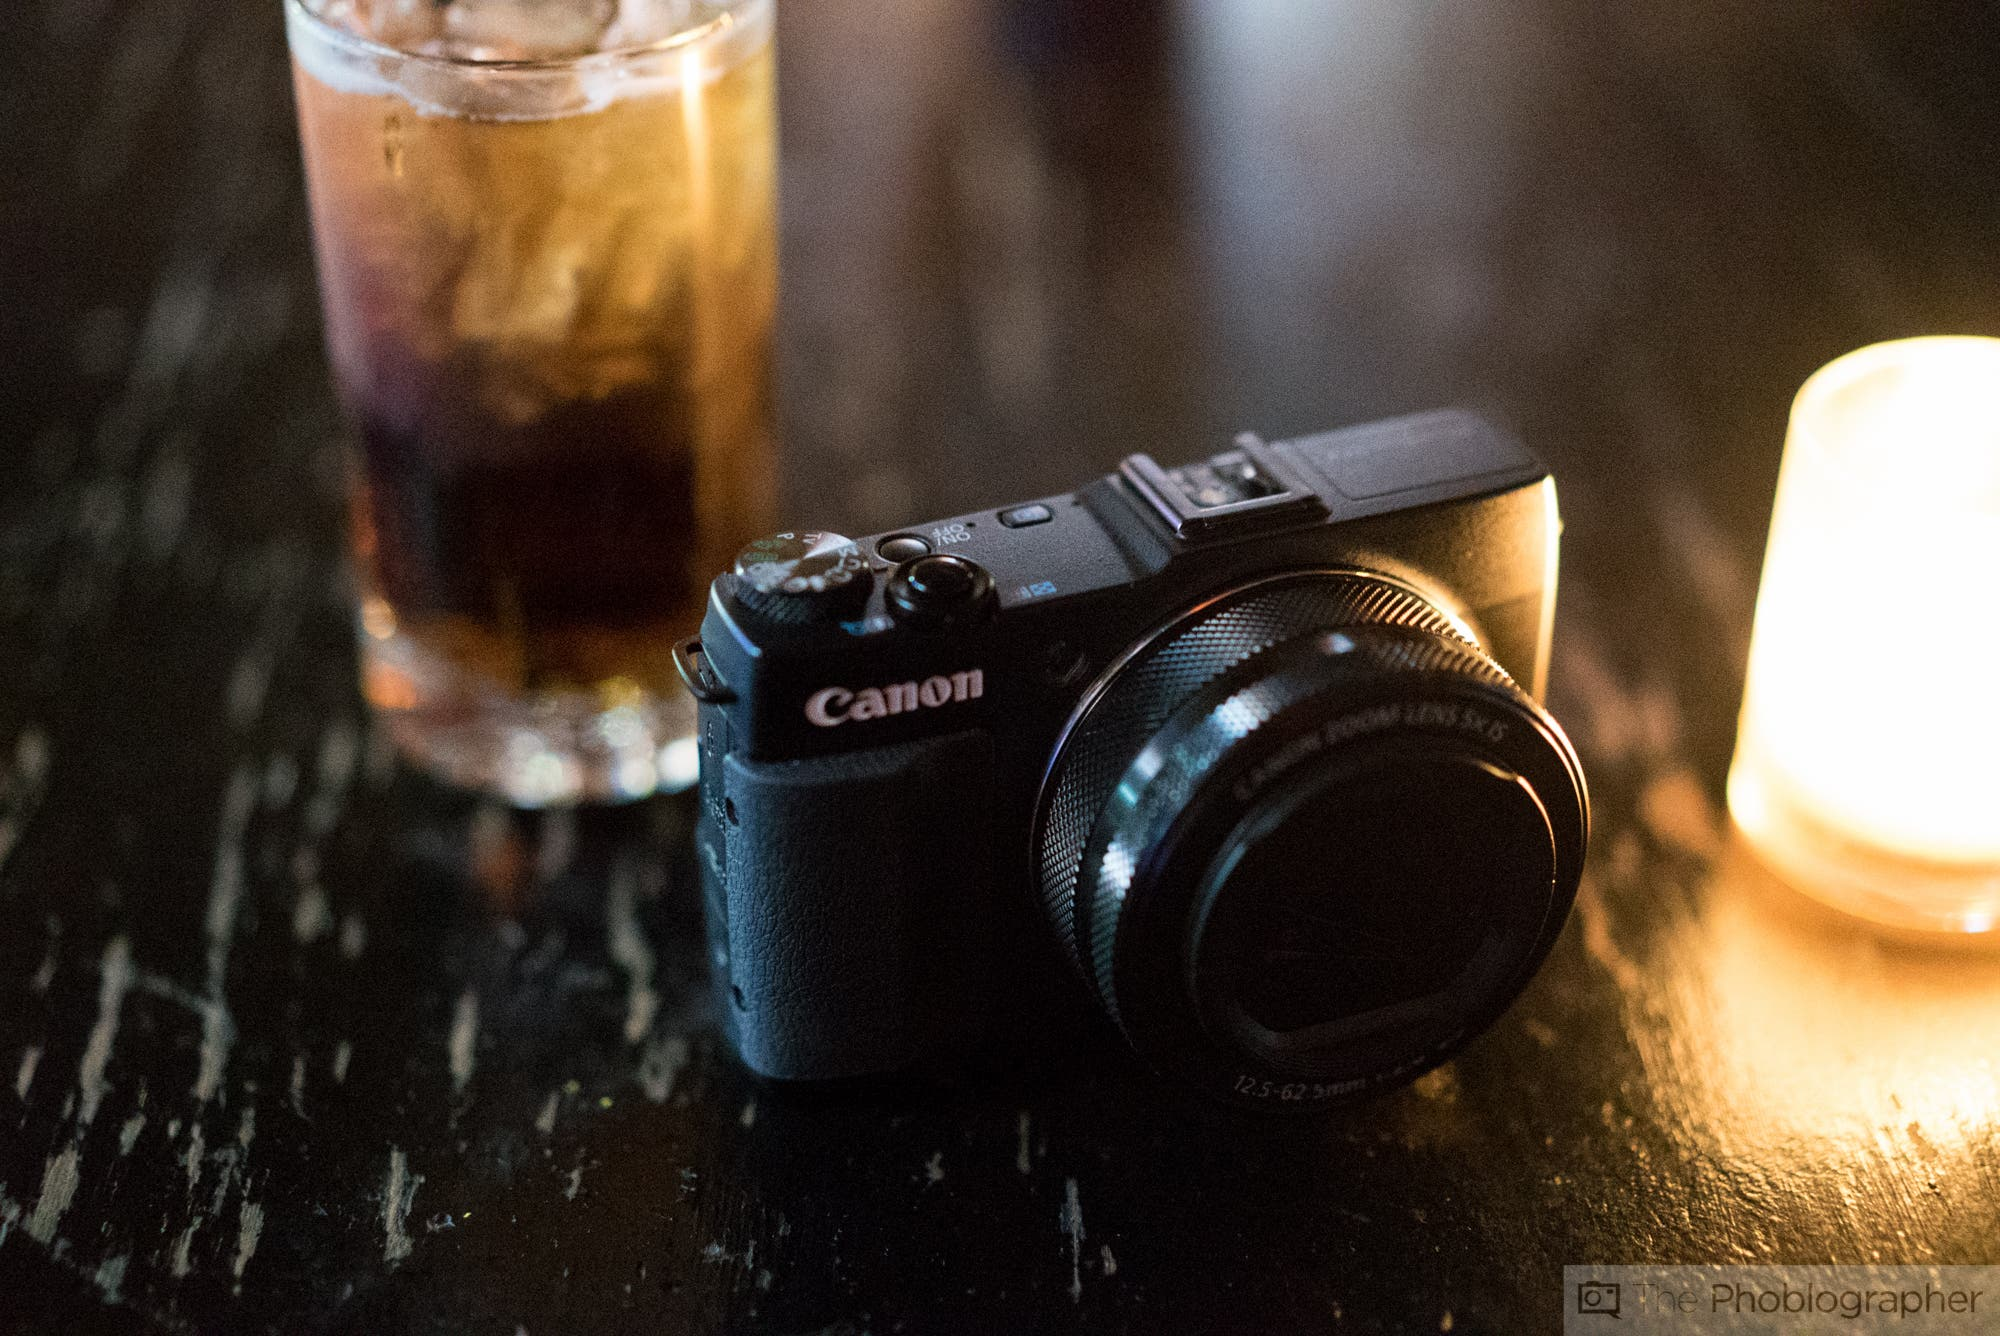 The Point and Shoot Camera is Good Enough for Professional Work